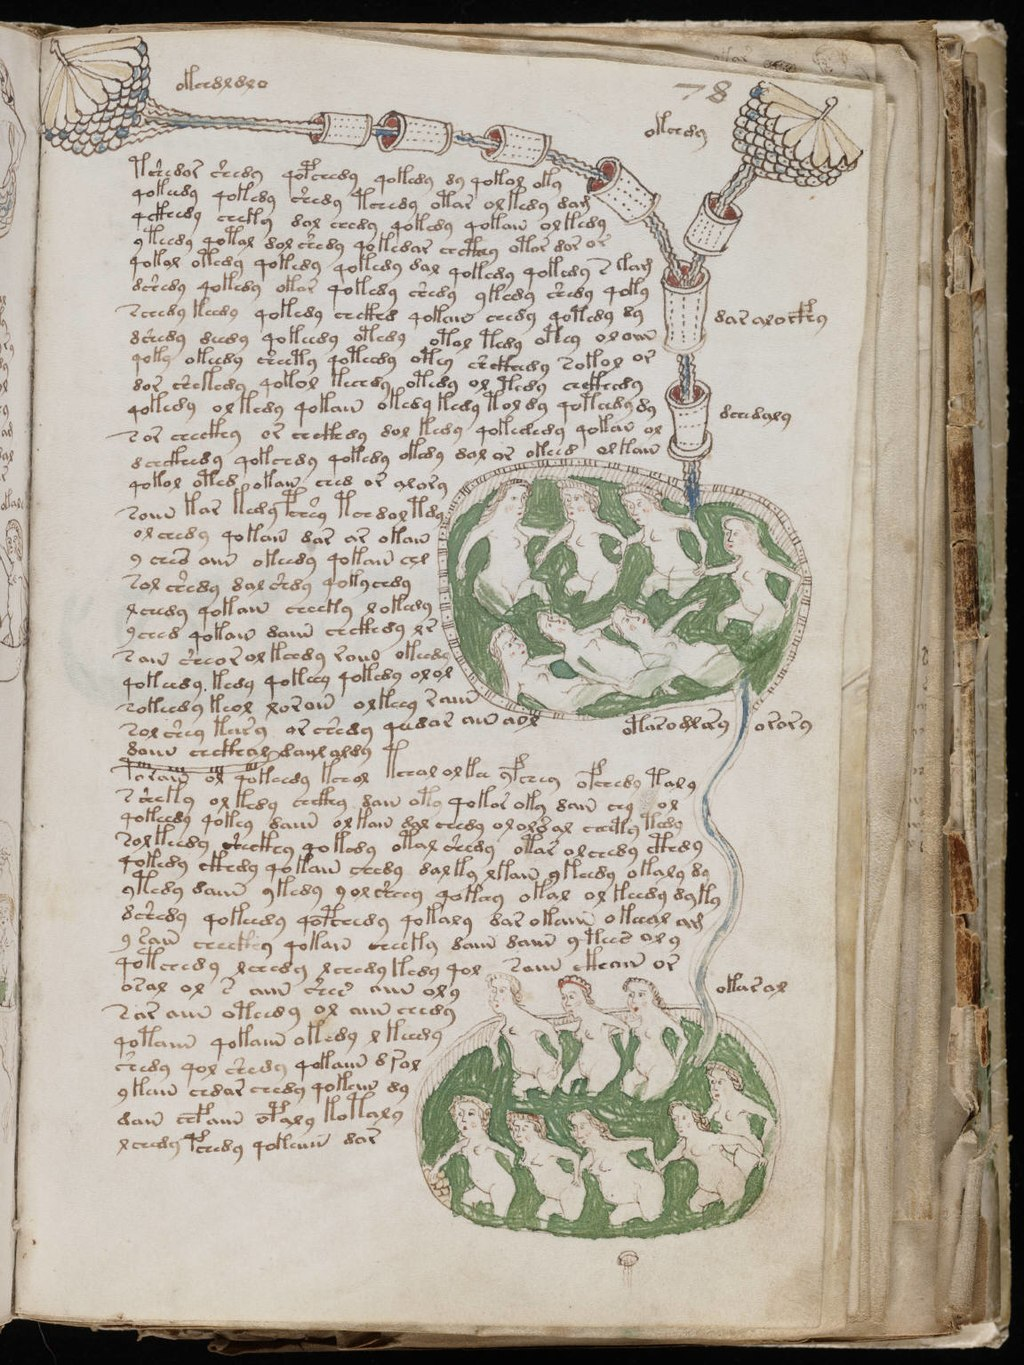 Another page from the mysterious Voynich manuscript from the so-called anatomical section